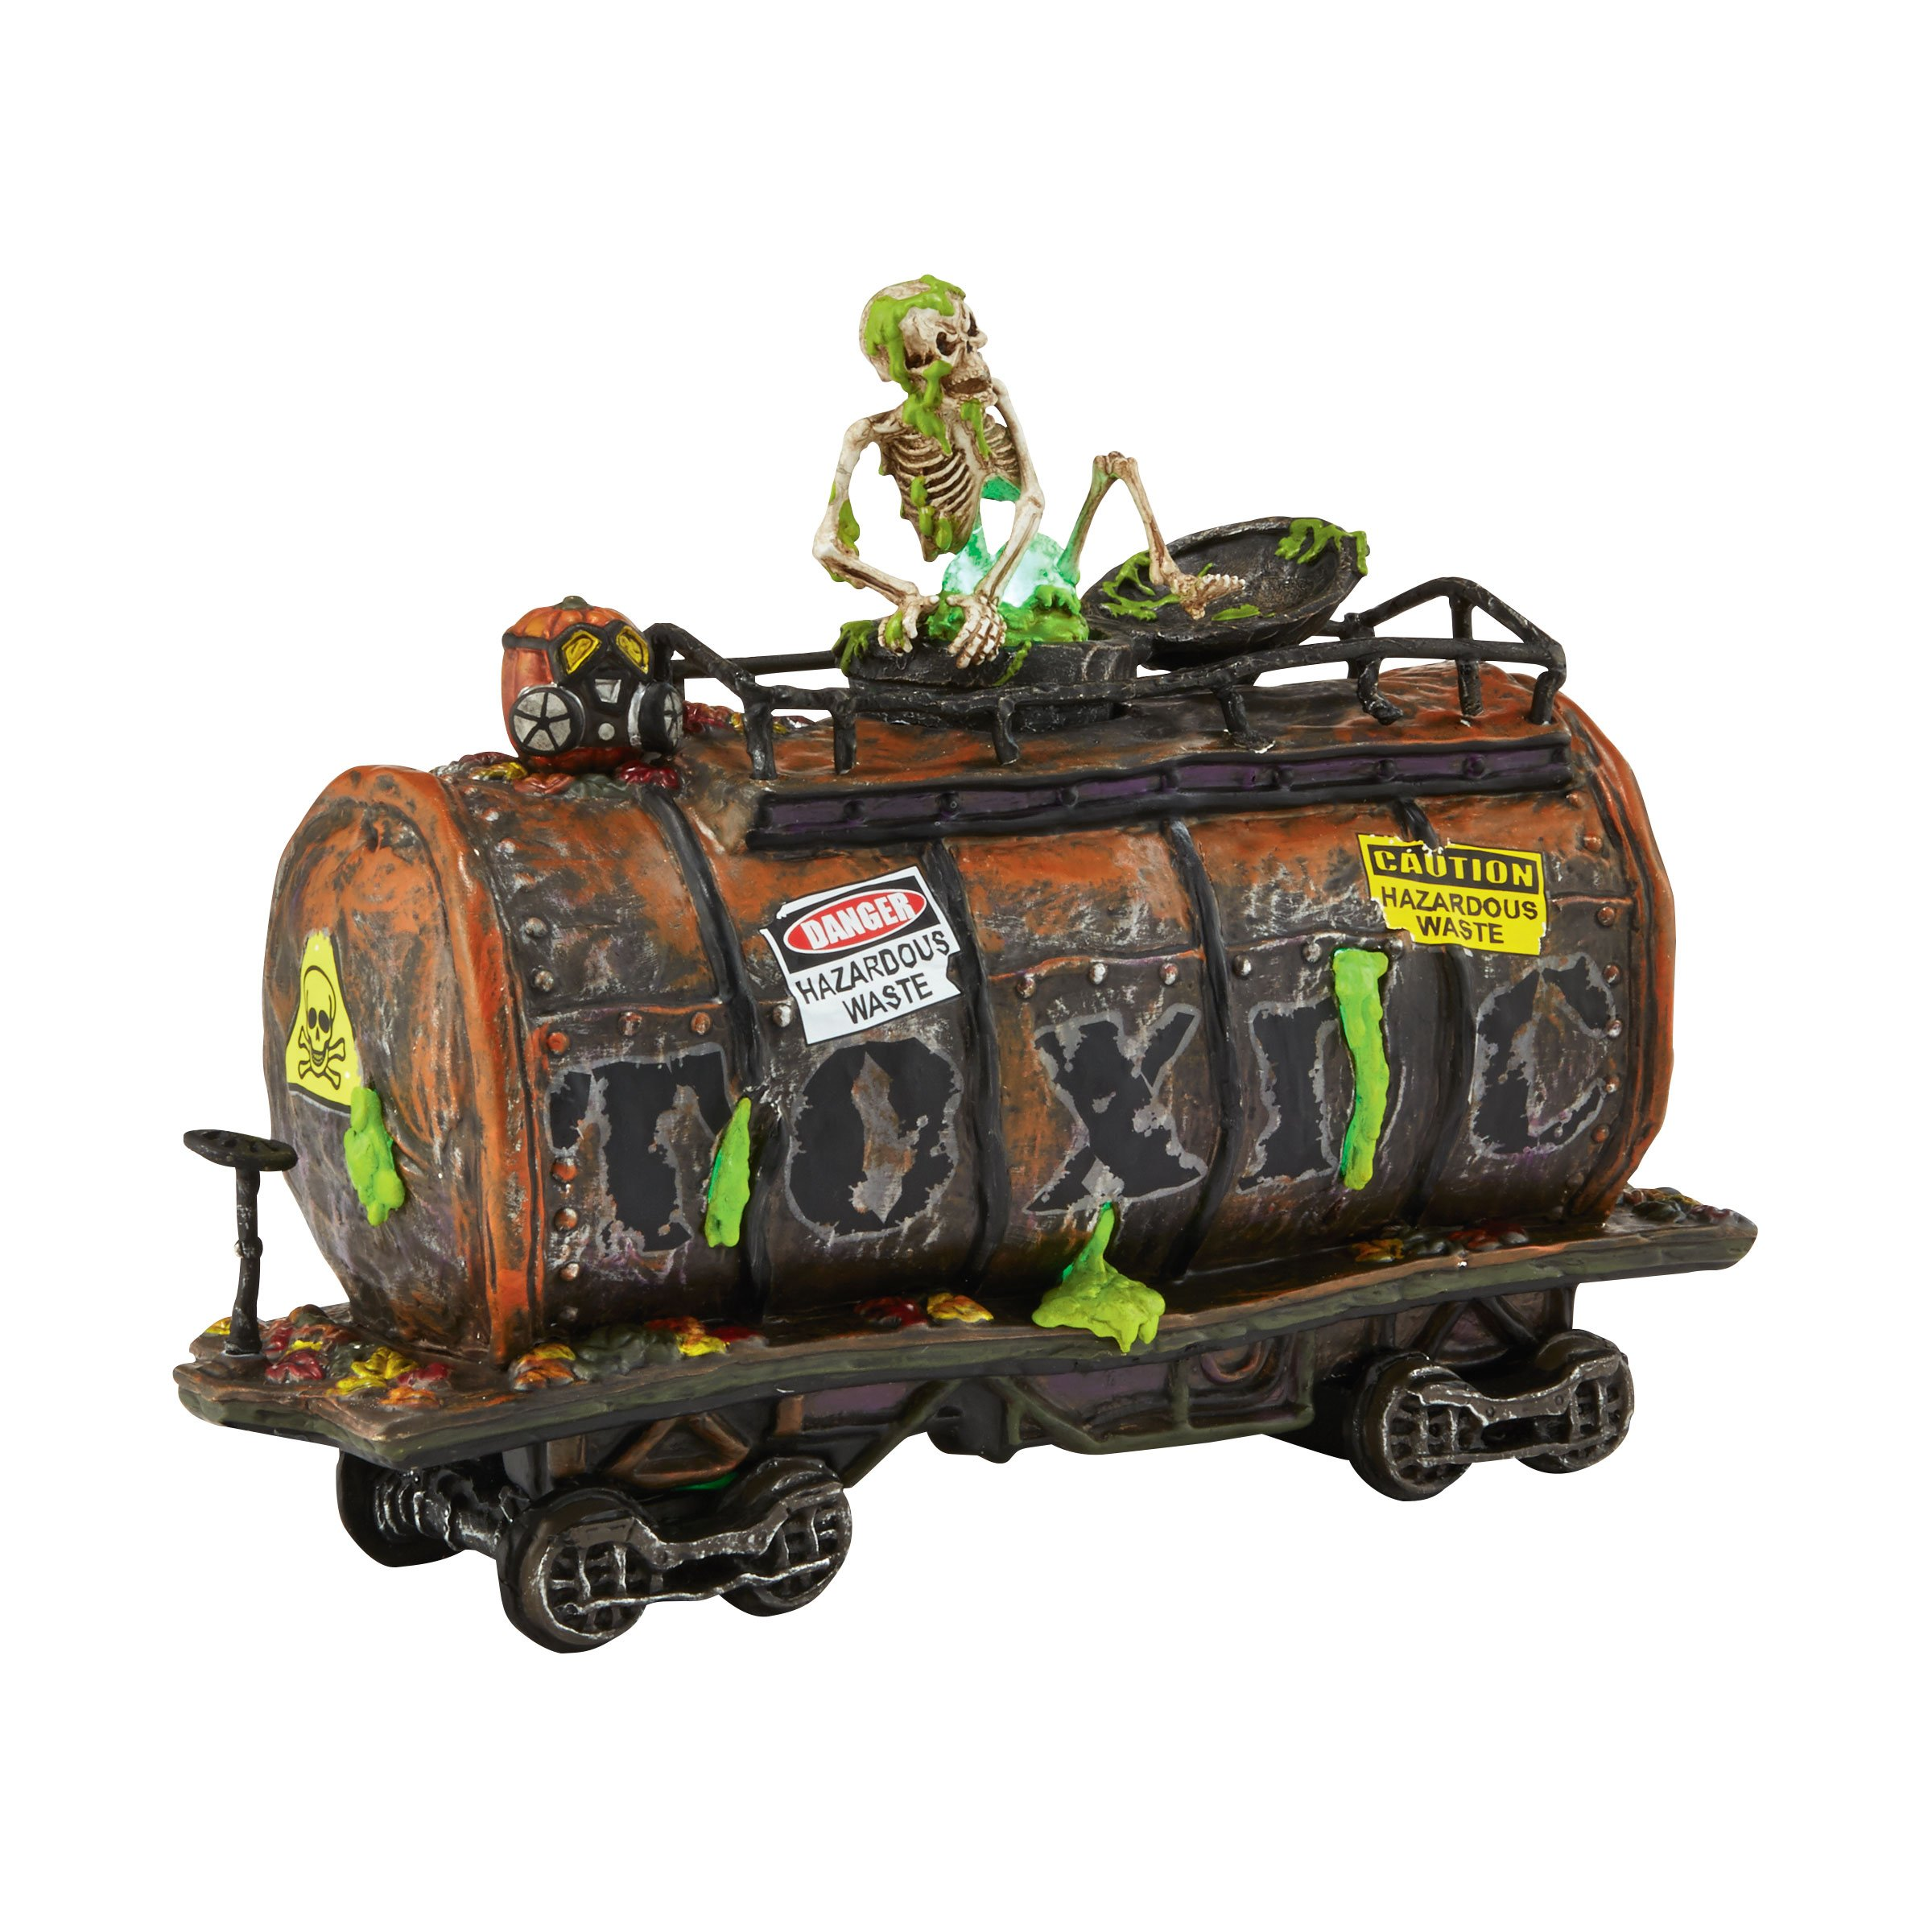 Department 56 Snow Village Halloween Toxic Waste Car Lit House, 6.69 inch